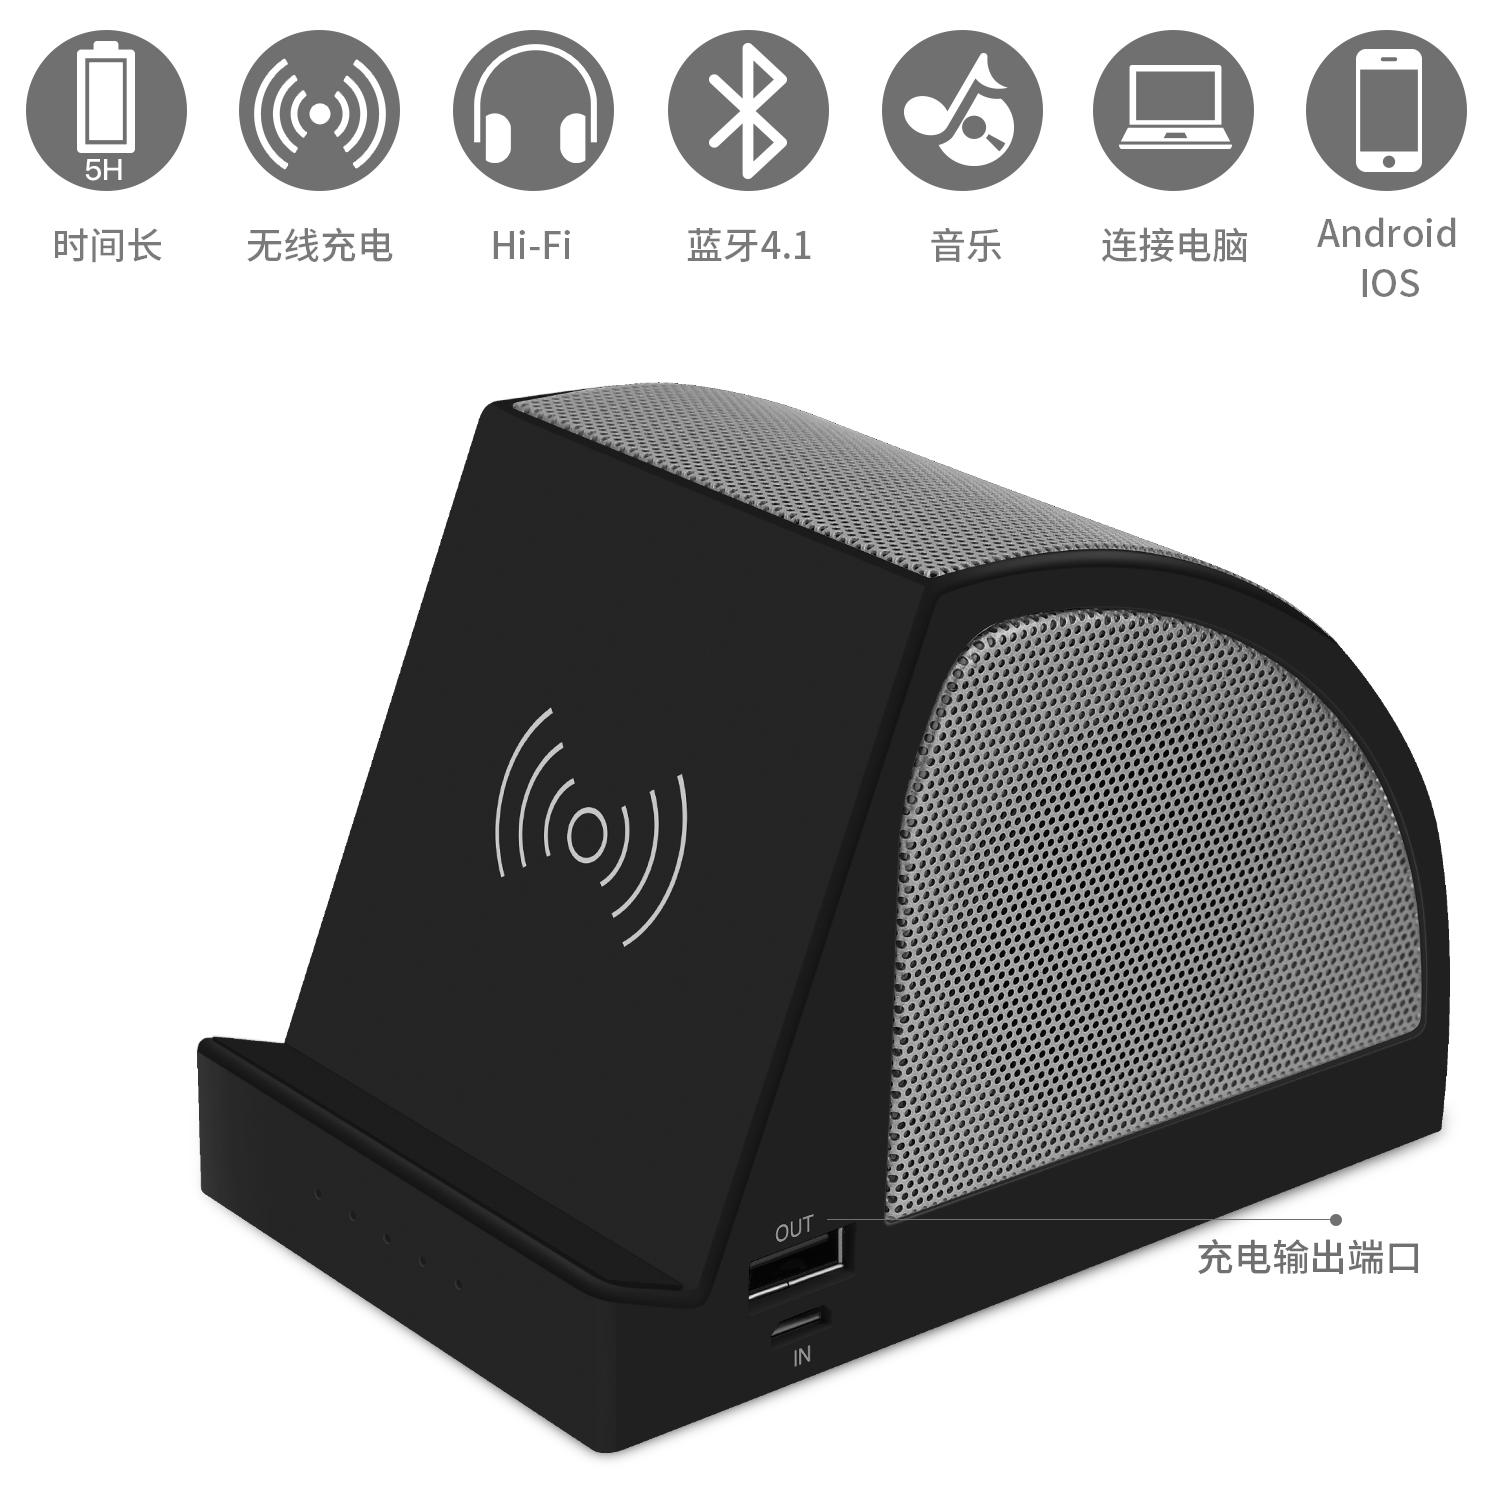 Bluetooth Speaker With TF Card Slot And FM Radio Wireless Portable Charger 5W 5000Mah Power Bank Cell Phone Accessories Charger